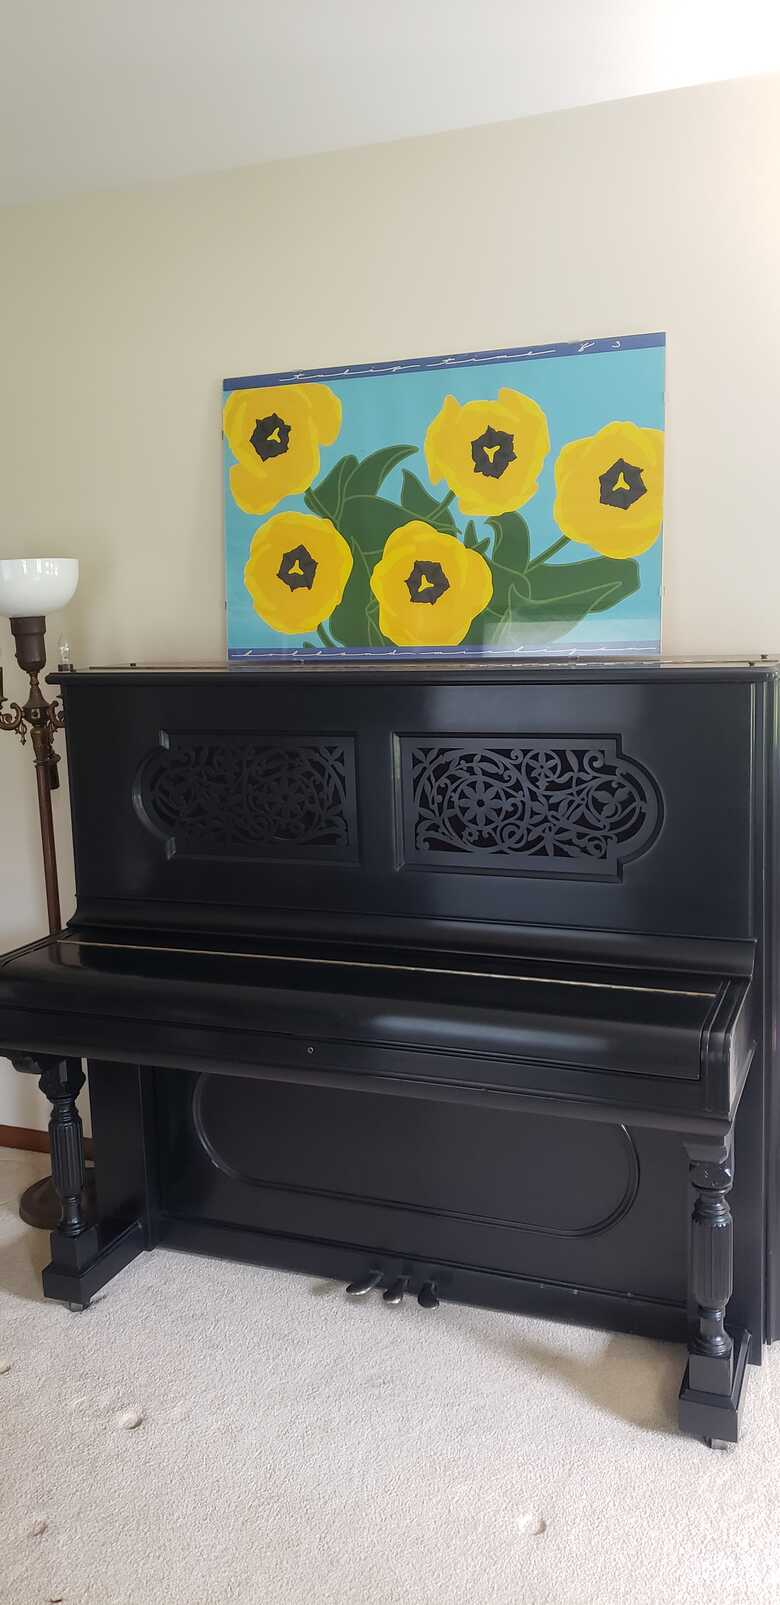 1888 Steinway & Sons Upright Piano Eastlake Victorian Style